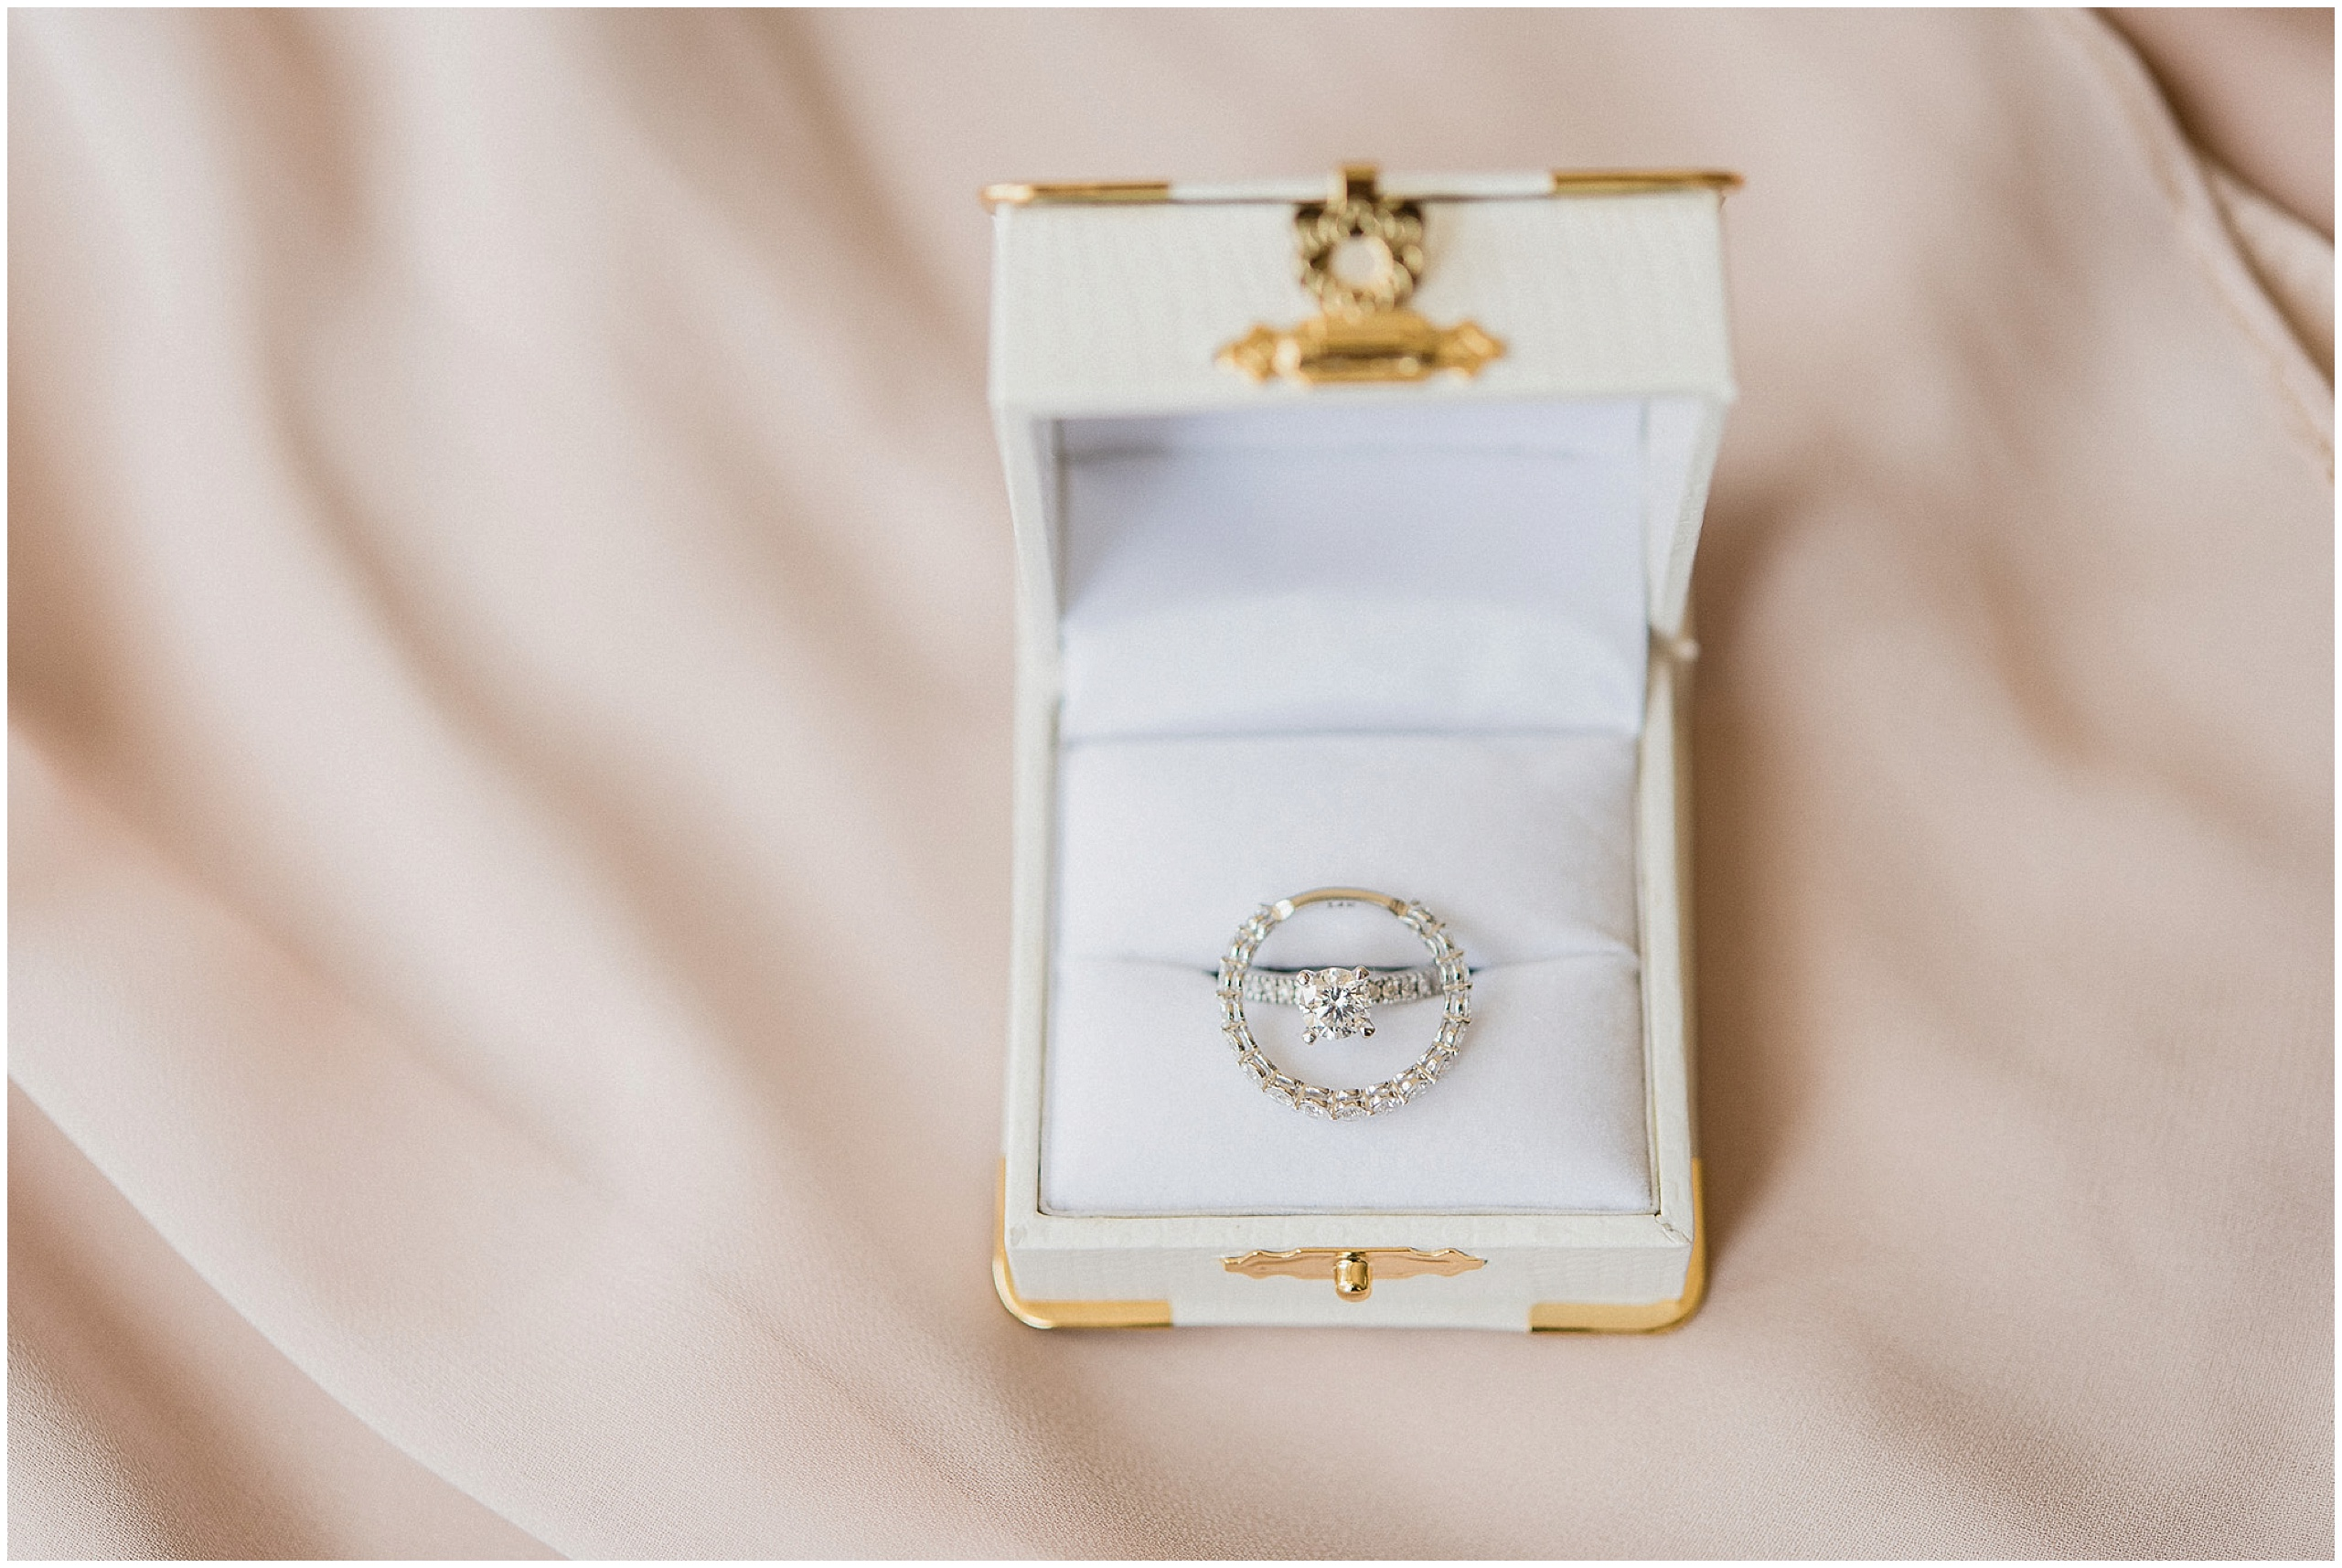 White gold engagement ring and wedding band in white ring box. Photographed by Jenn Kavanagh Photography